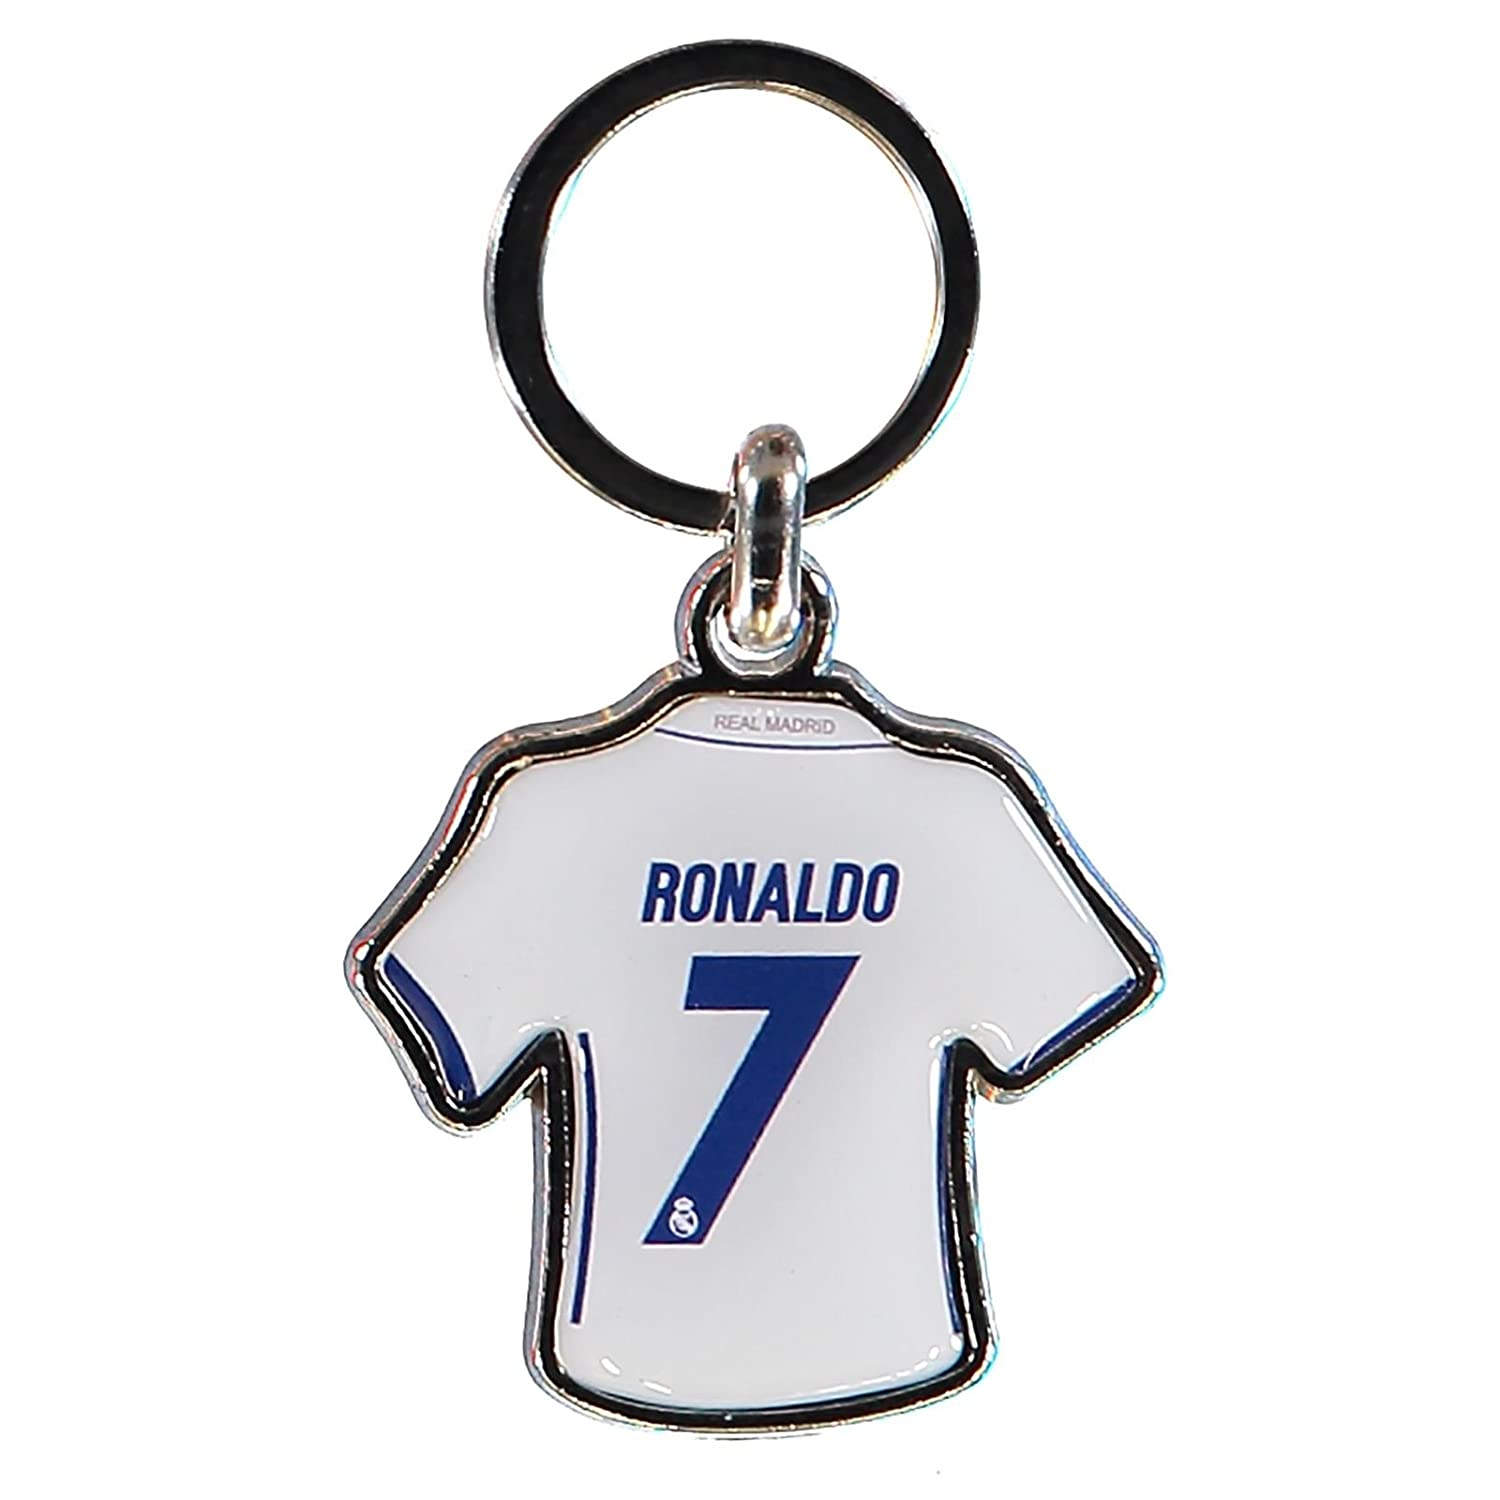 Real Madrid - Llavero Camiseta Ronaldo (Llavero): Amazon.es ...